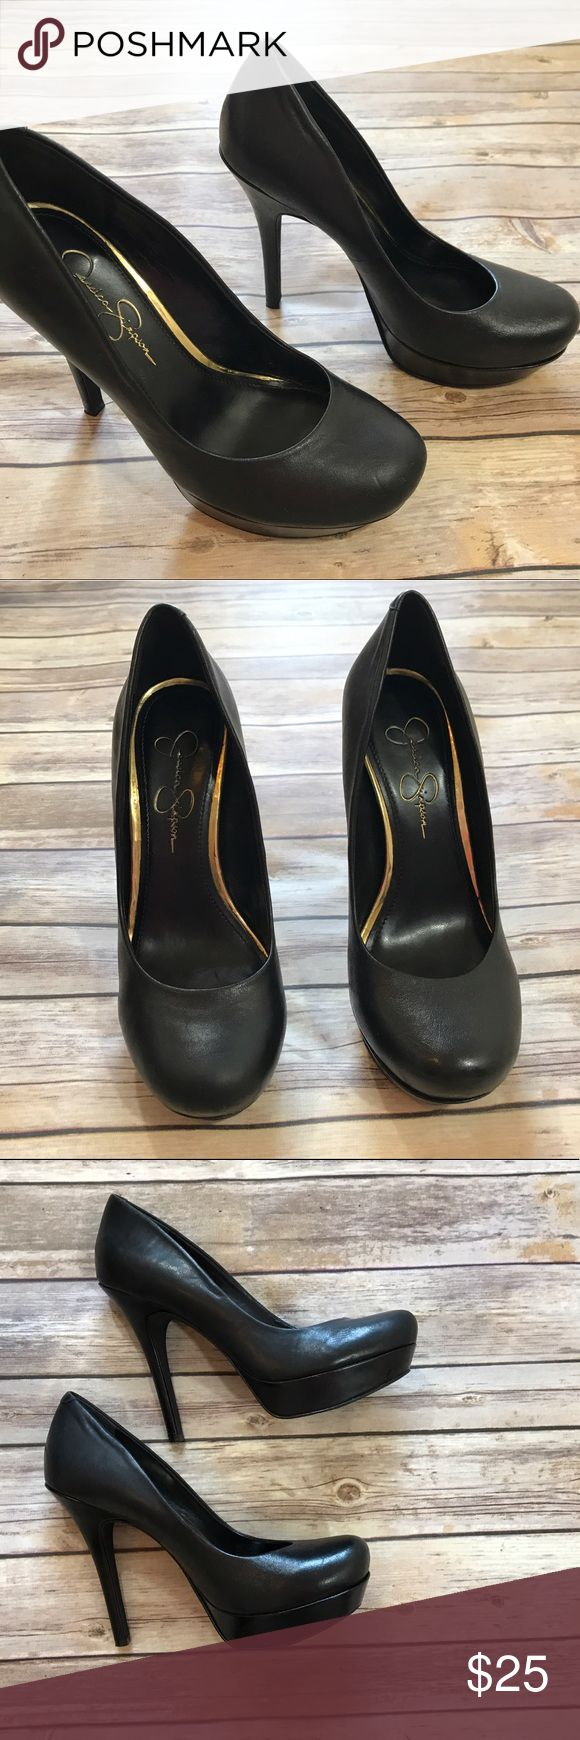 """Jessica Simpson black platform pumps/ heels 5"""" heel. All black pumps/ heels. Very comfortable. Some scuffs of the bottom from rocks ( see last photo). Jessica Simpson Shoes Heels"""